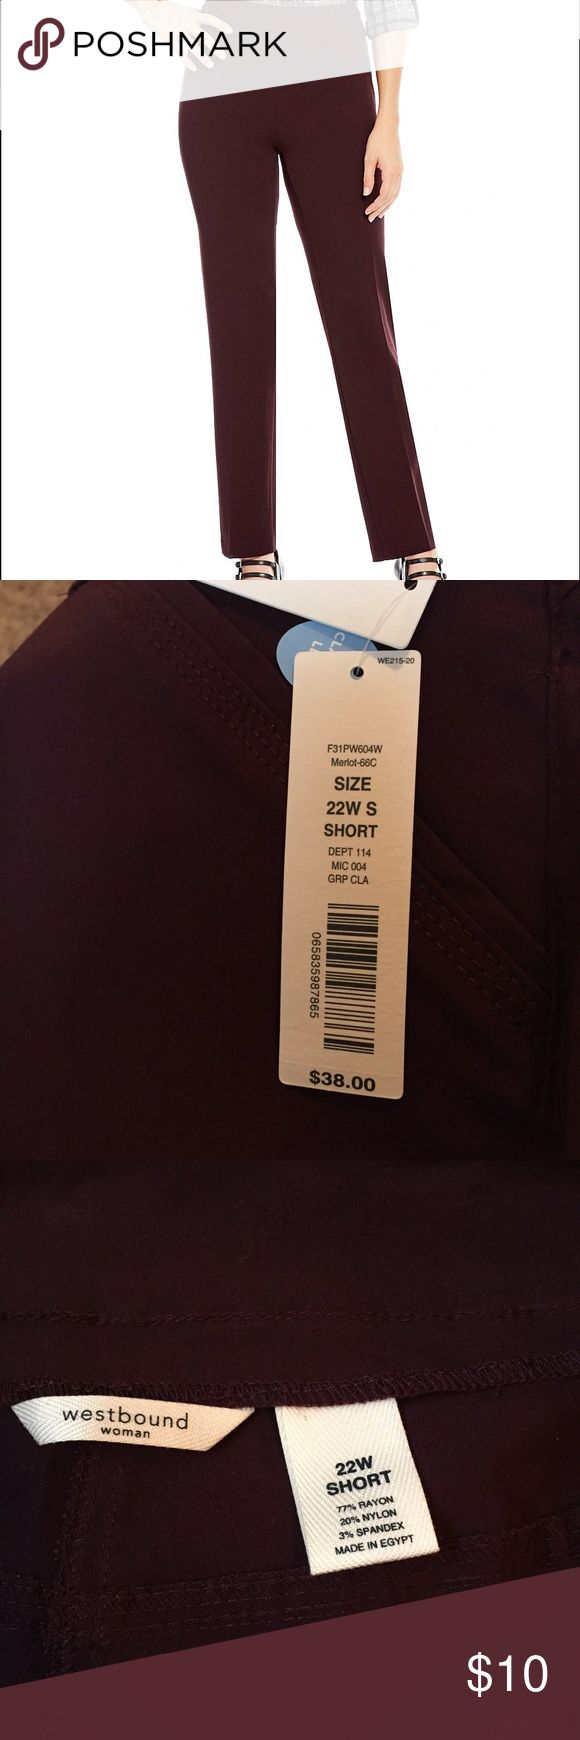 Size 22W short trouser New with tags Westbound Woman Merlot straight leg pant. Westbound Woman Pants Straight Leg